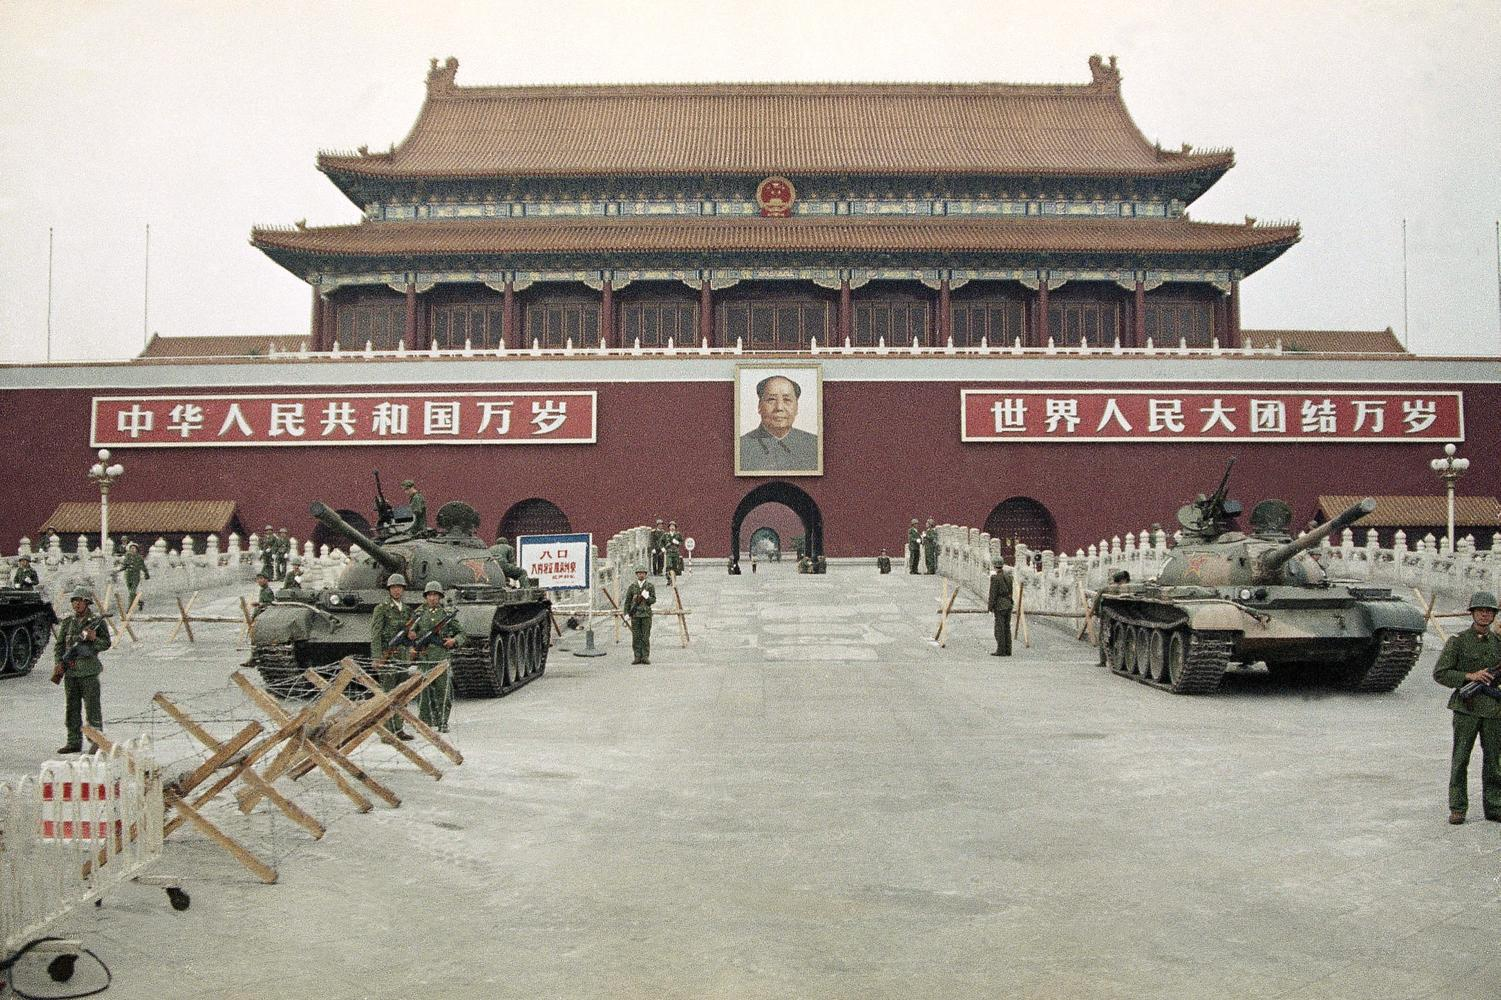 In this June 10, 1989 file photo, People's Liberation Army (PLA) troops stand guard with tanks in front of Tiananmen Square after crushing the students pro-democracy demonstrations in Beijing. Thirty years since the Tiananmen Square protests, China's economy has catapulted up the world rankings, yet political repression is harsher than ever.